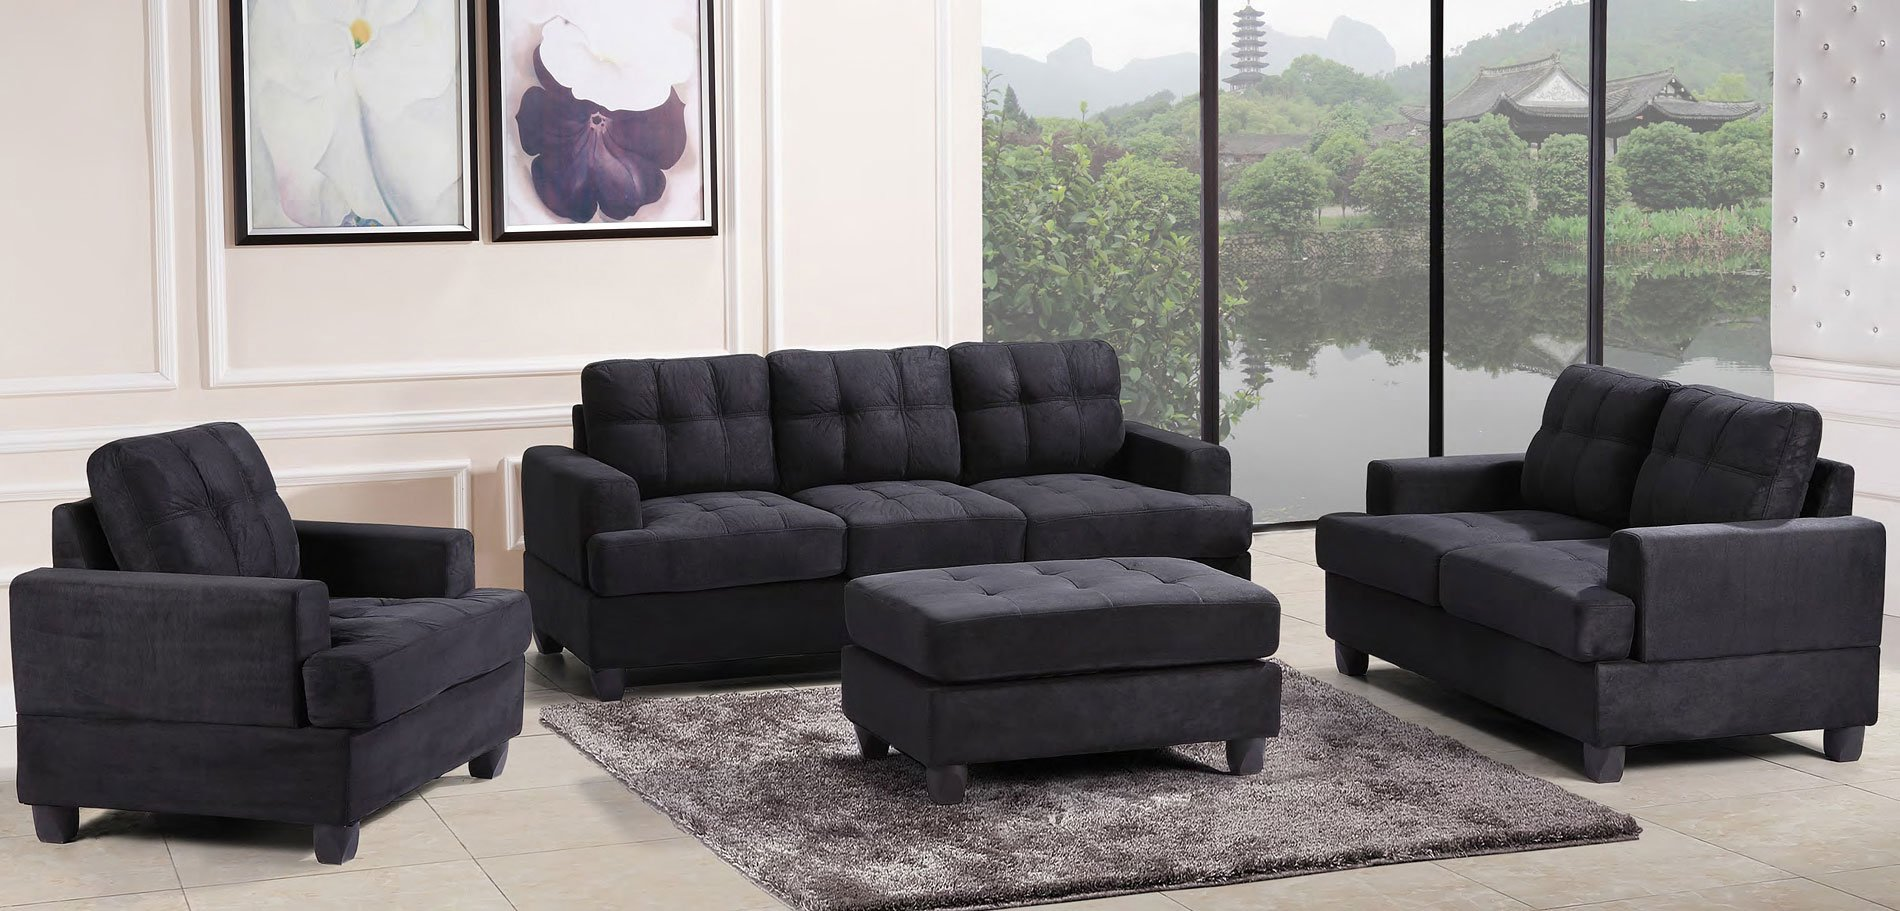 G515 Living Room Set (Black)